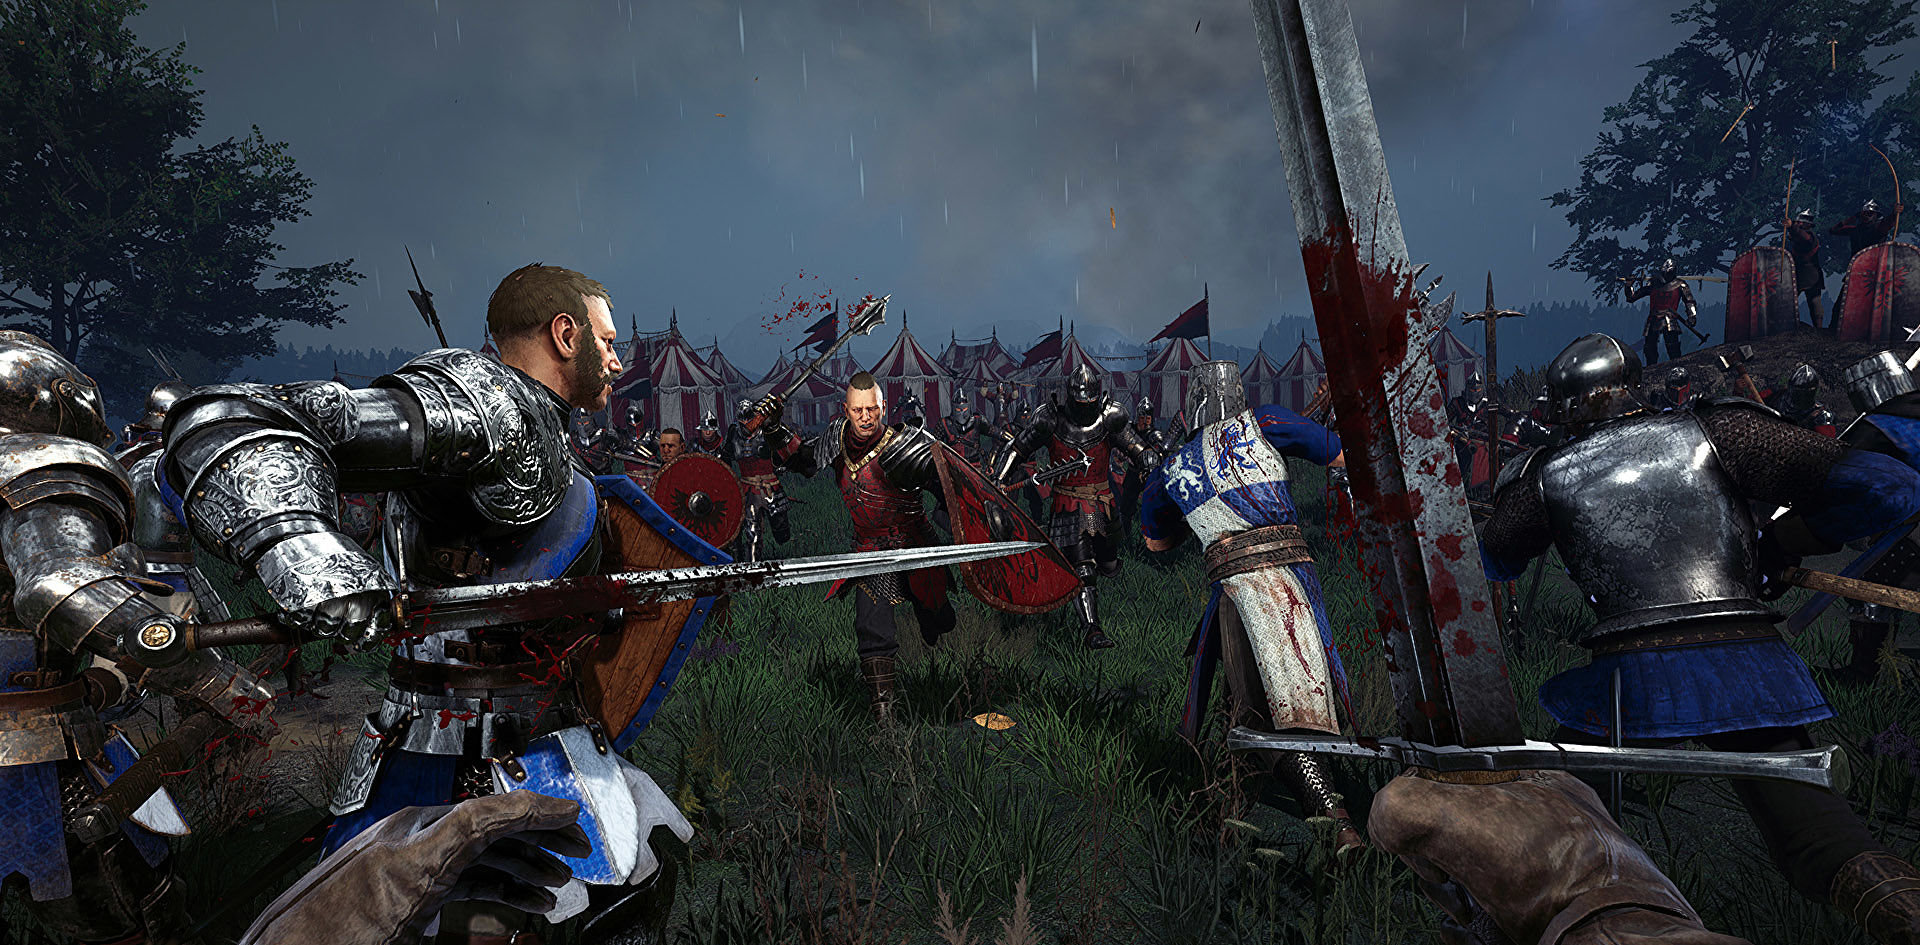 Chivalry 2 is out this June, with a closed beta in March